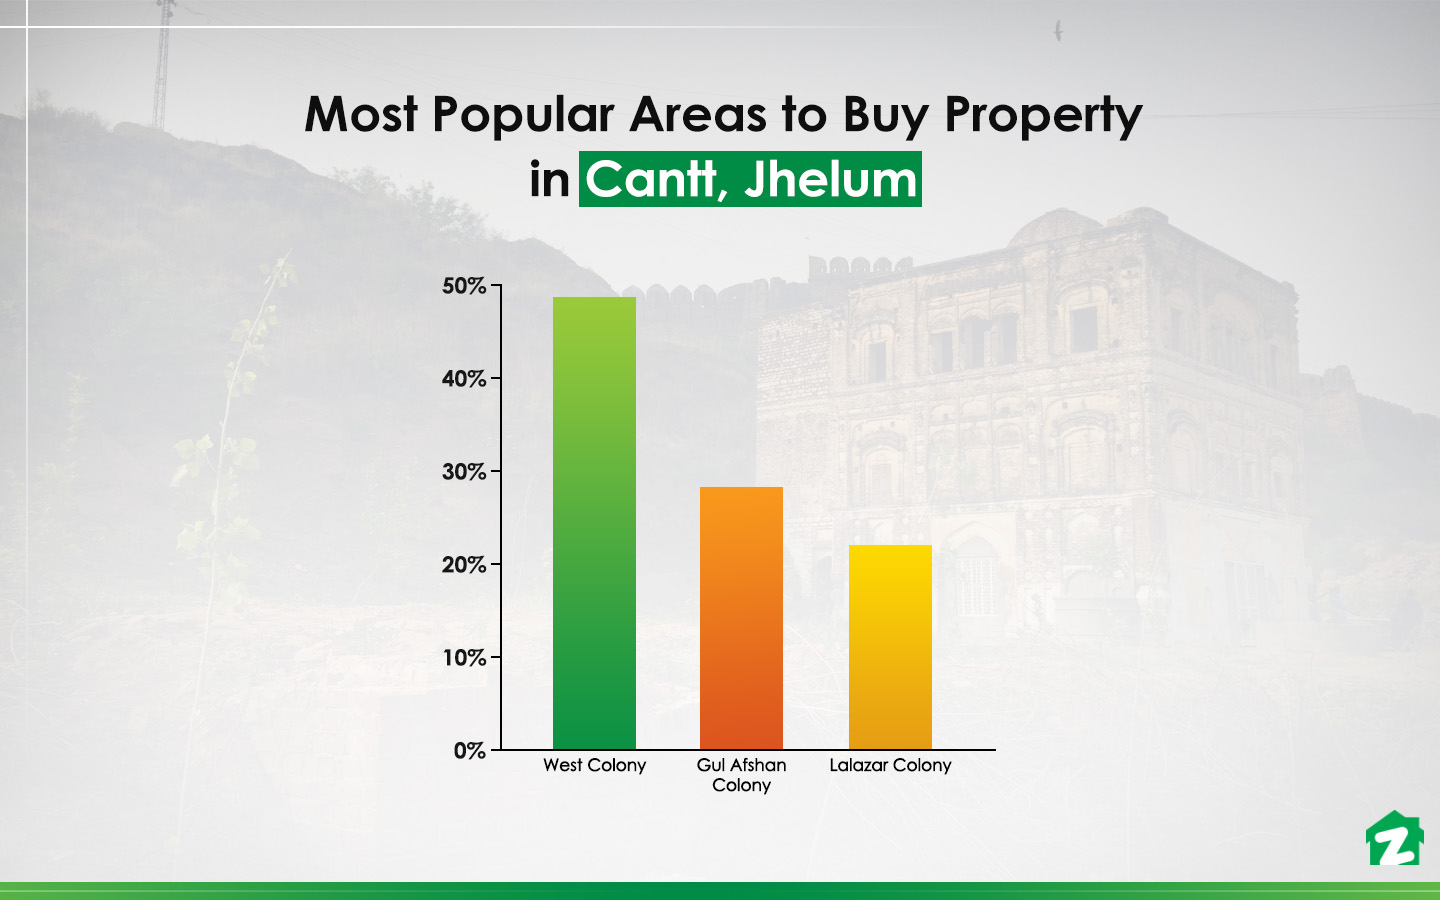 Most Popular Areas to Buy Property in Cantt, Jhelum